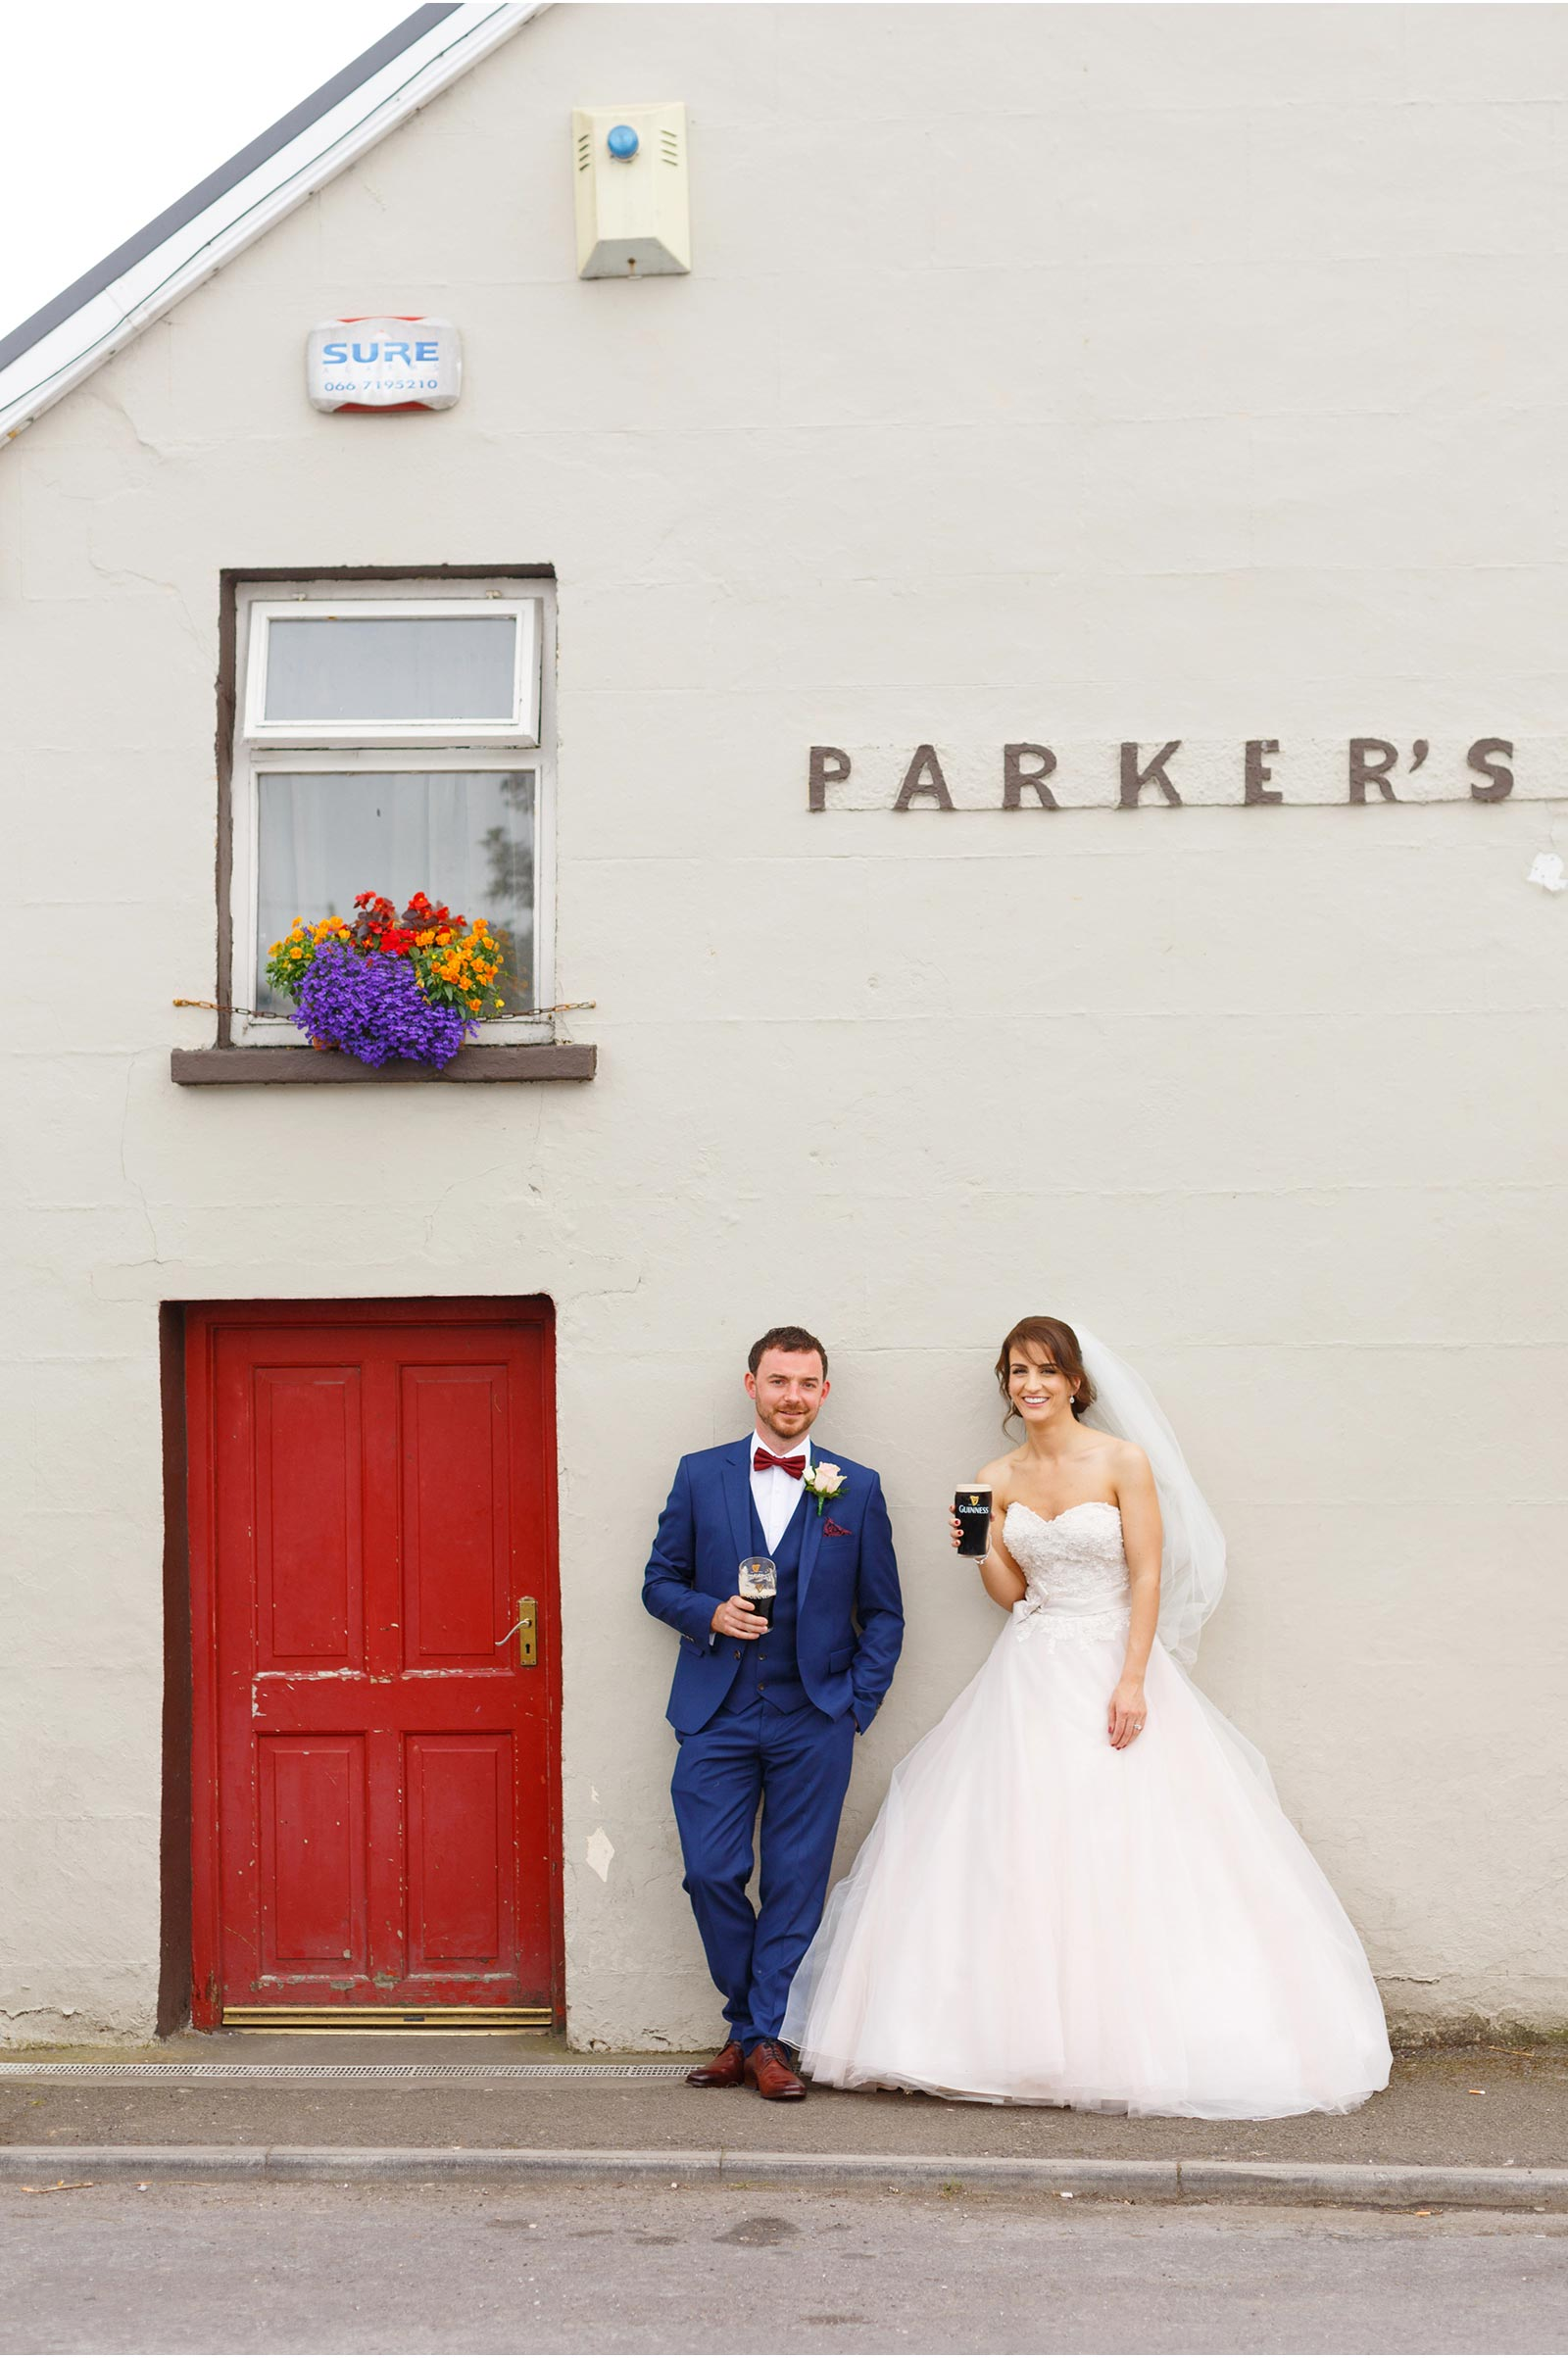 Bride and groom having a lovely pint of guiness outside parkers bar in Kilflynn County Kerry